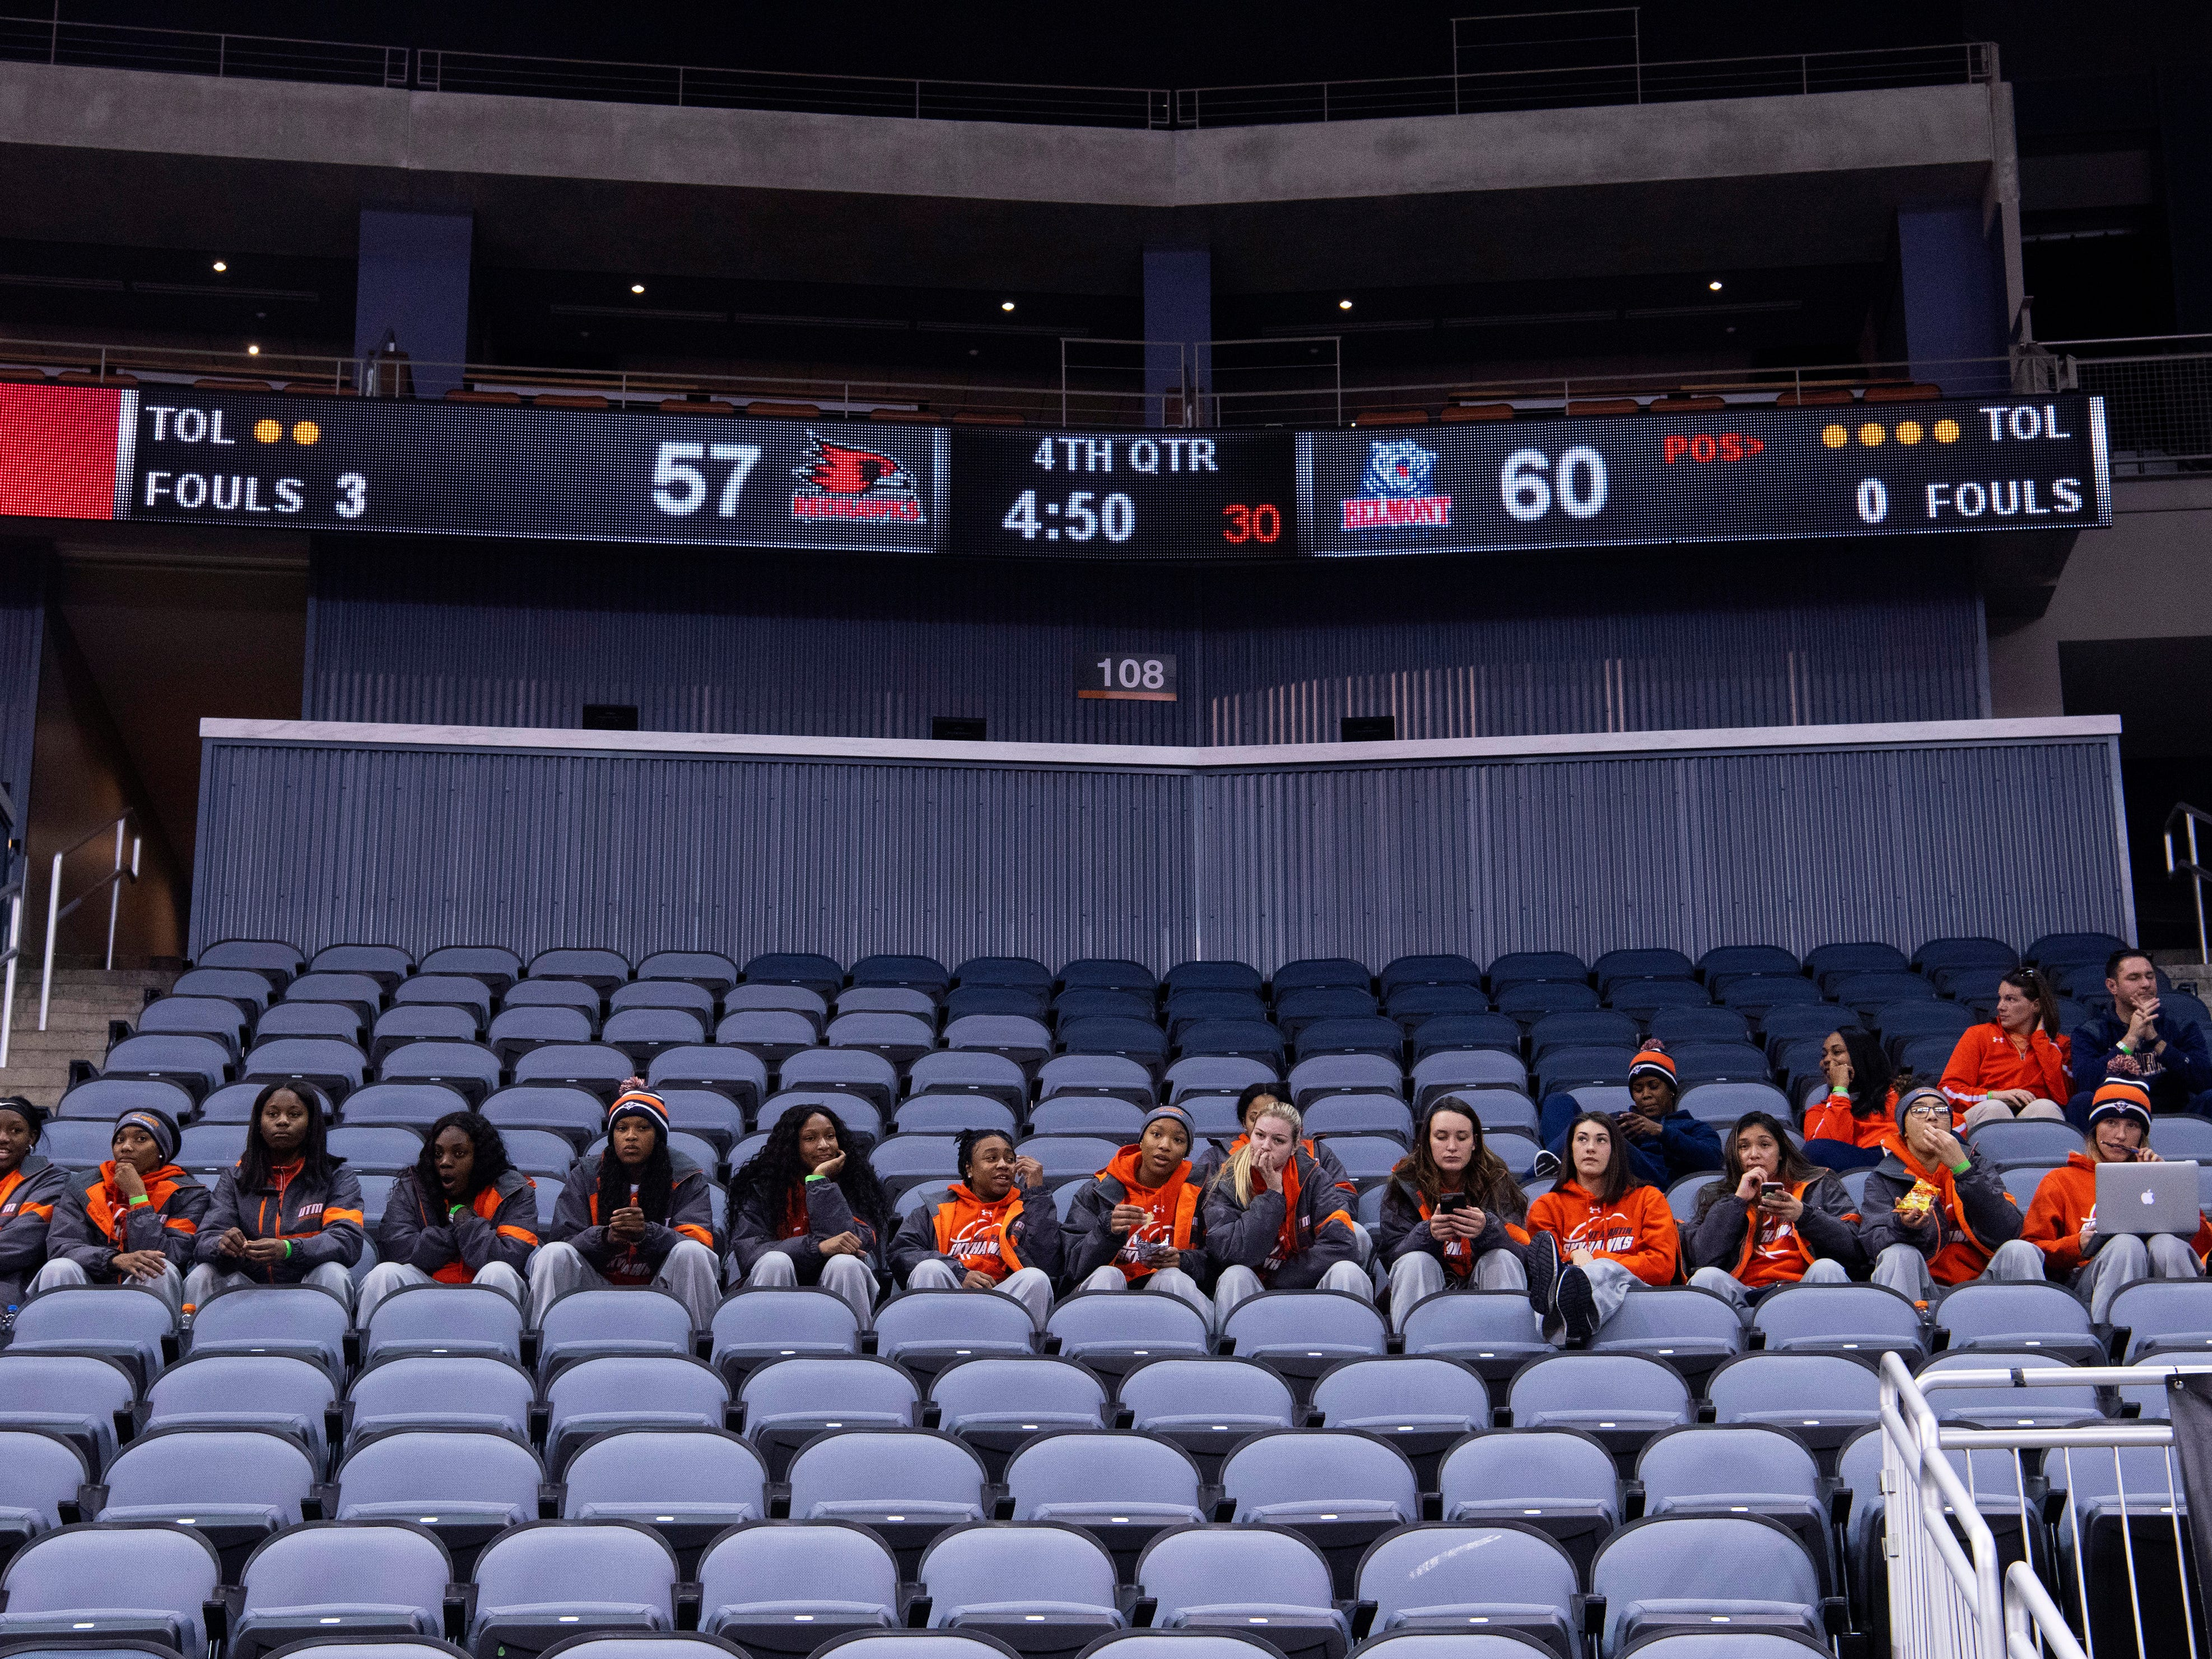 The UT Martin women's basketball team takes in the first game of the Ohio Valley Conference Basketball Championships at the Ford Center Wednesday afternoon. They would take on Murray State in Game 4 of the tournament the next day.